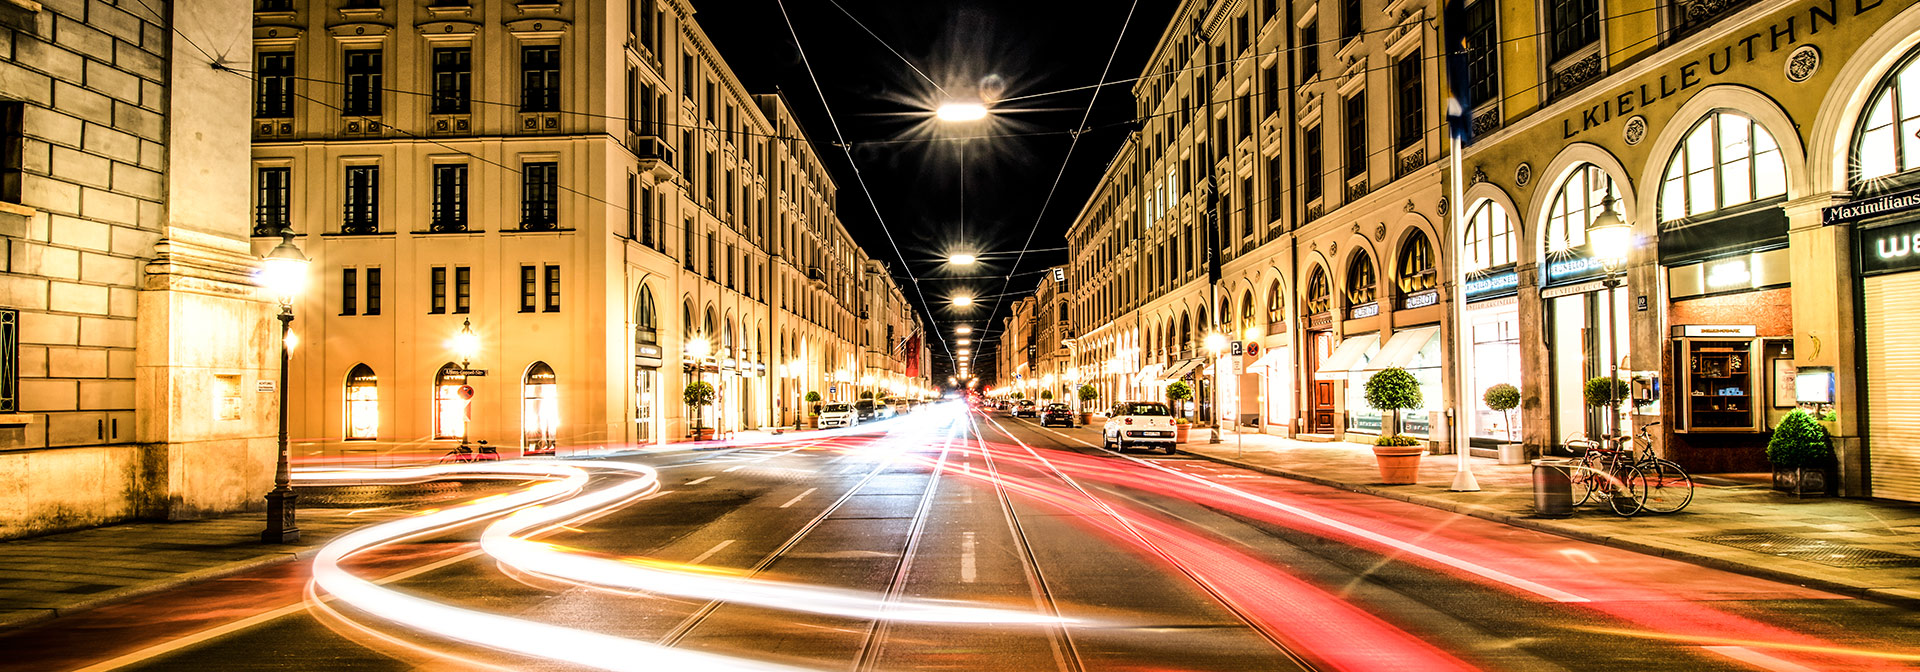 Maximilianstrasse at Night